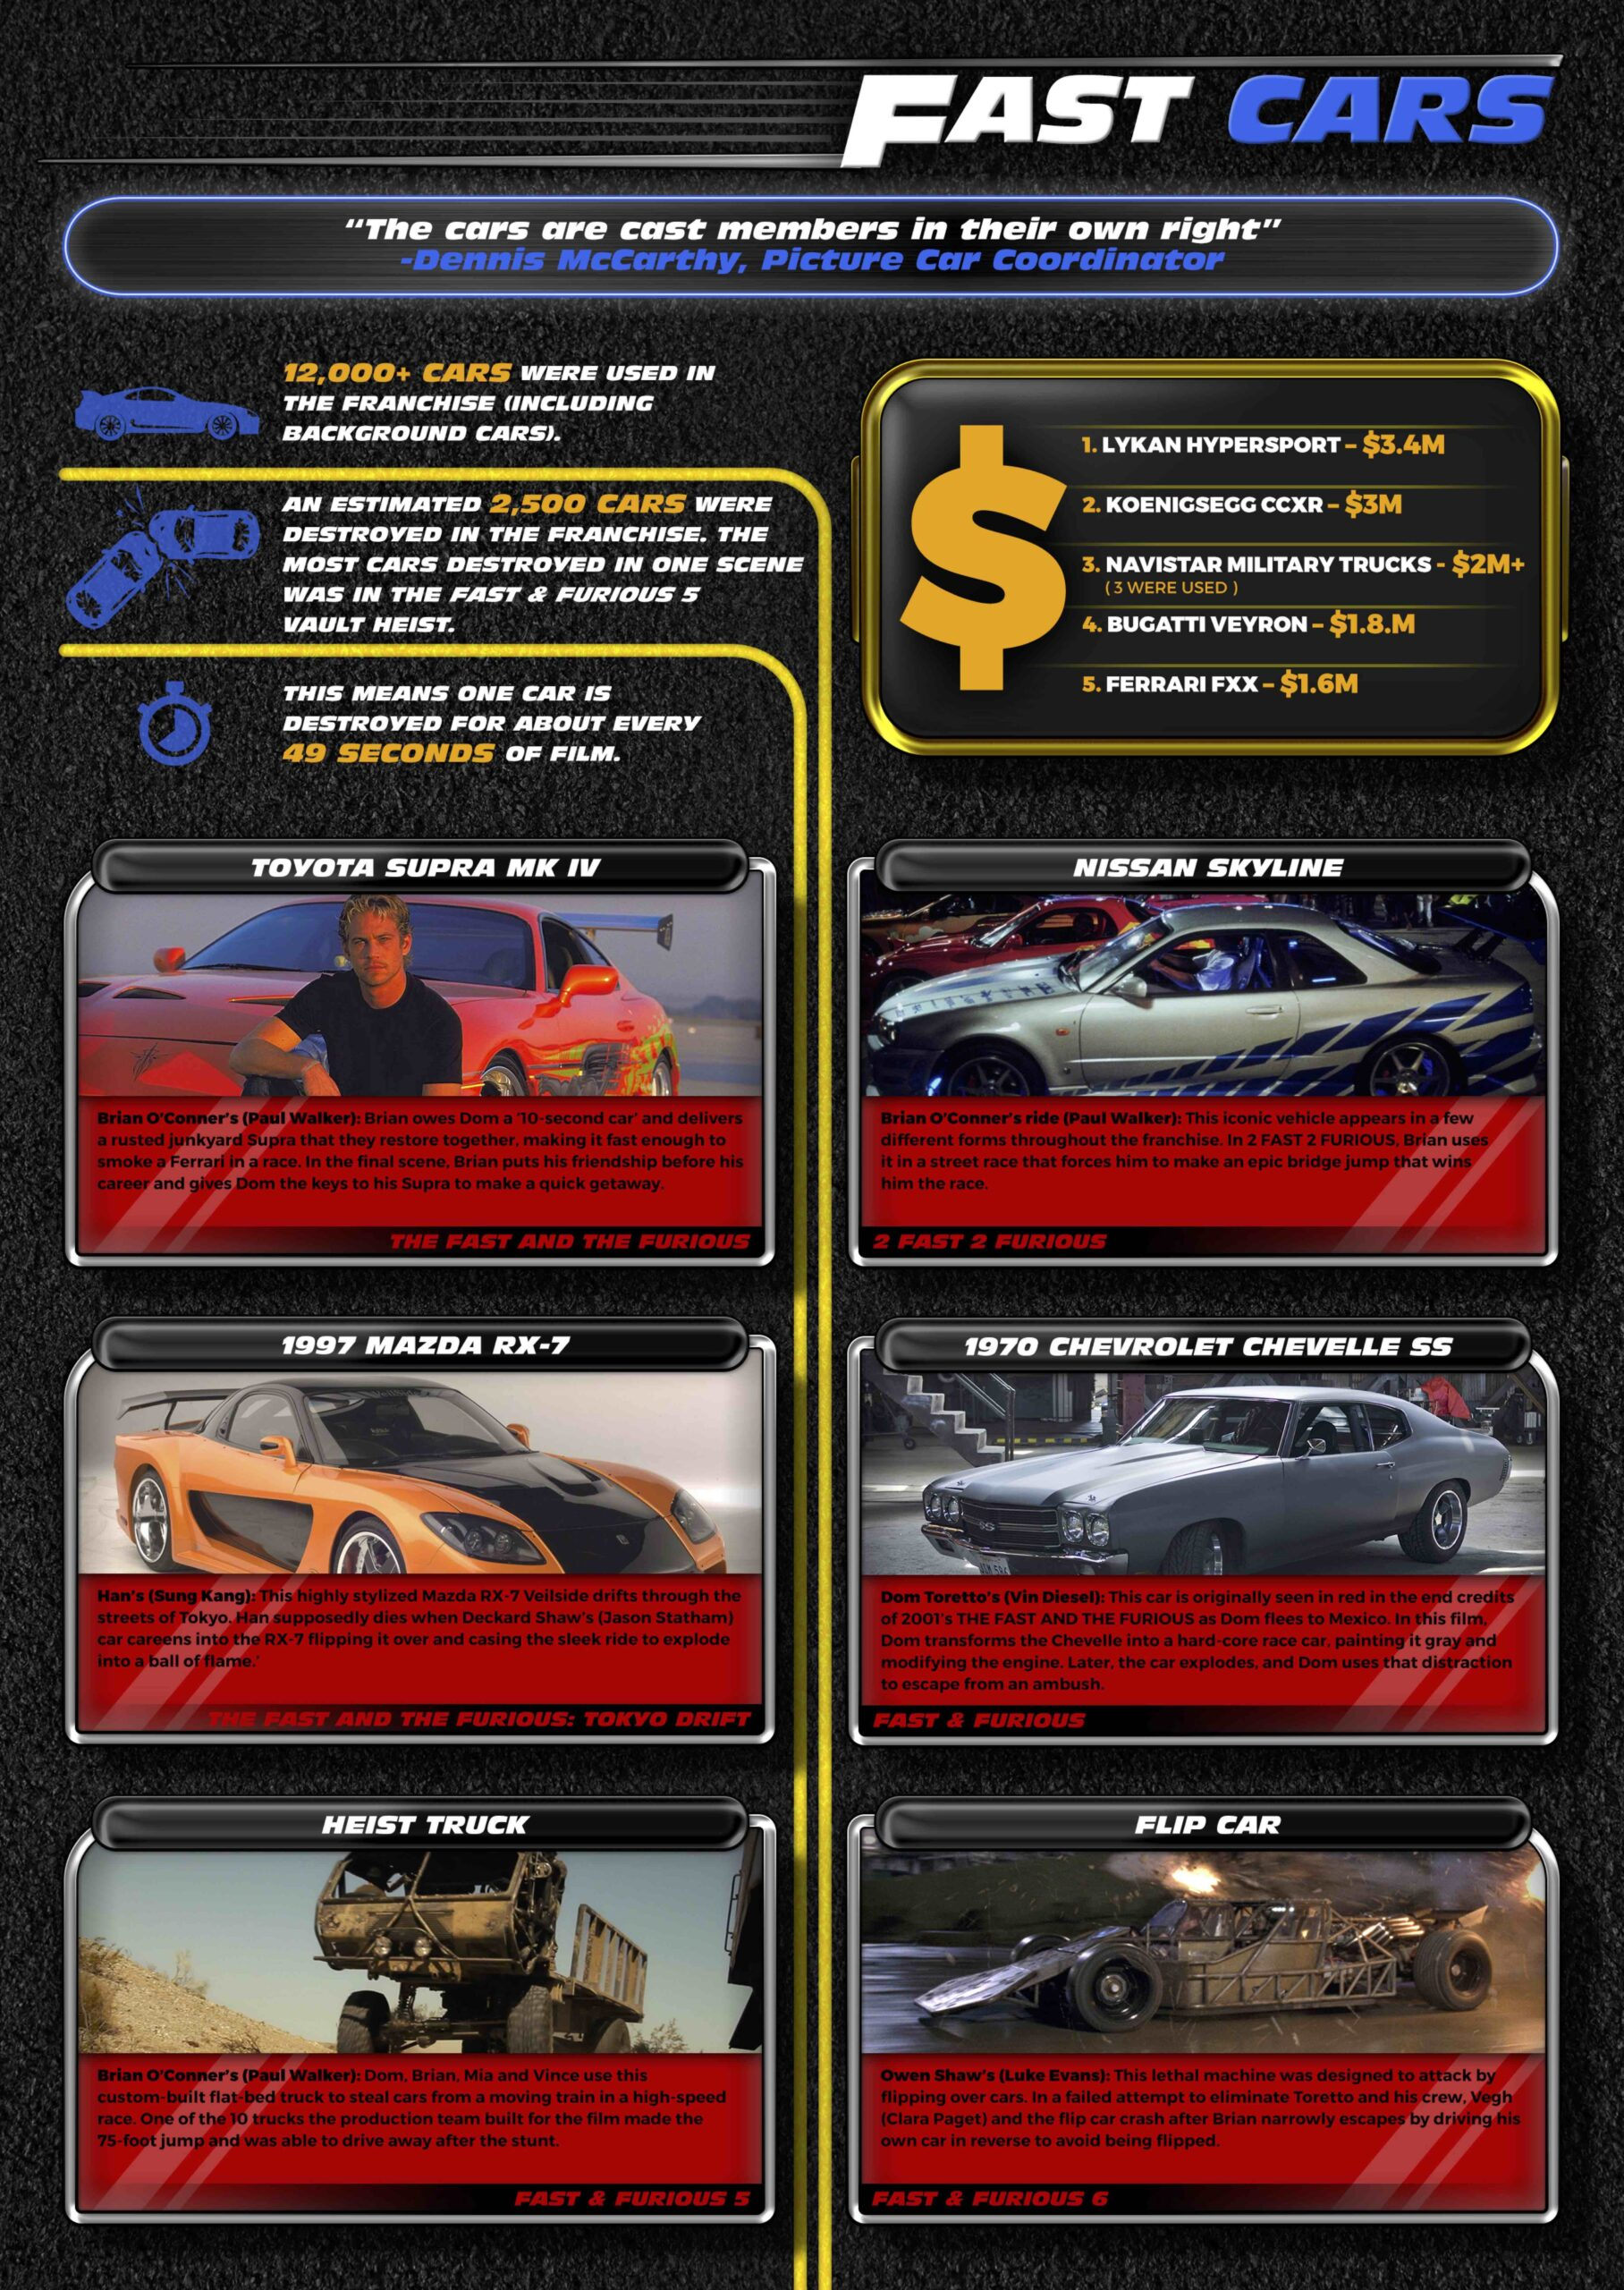 FF9 FactSheet - 20 Years of Fast & Furious